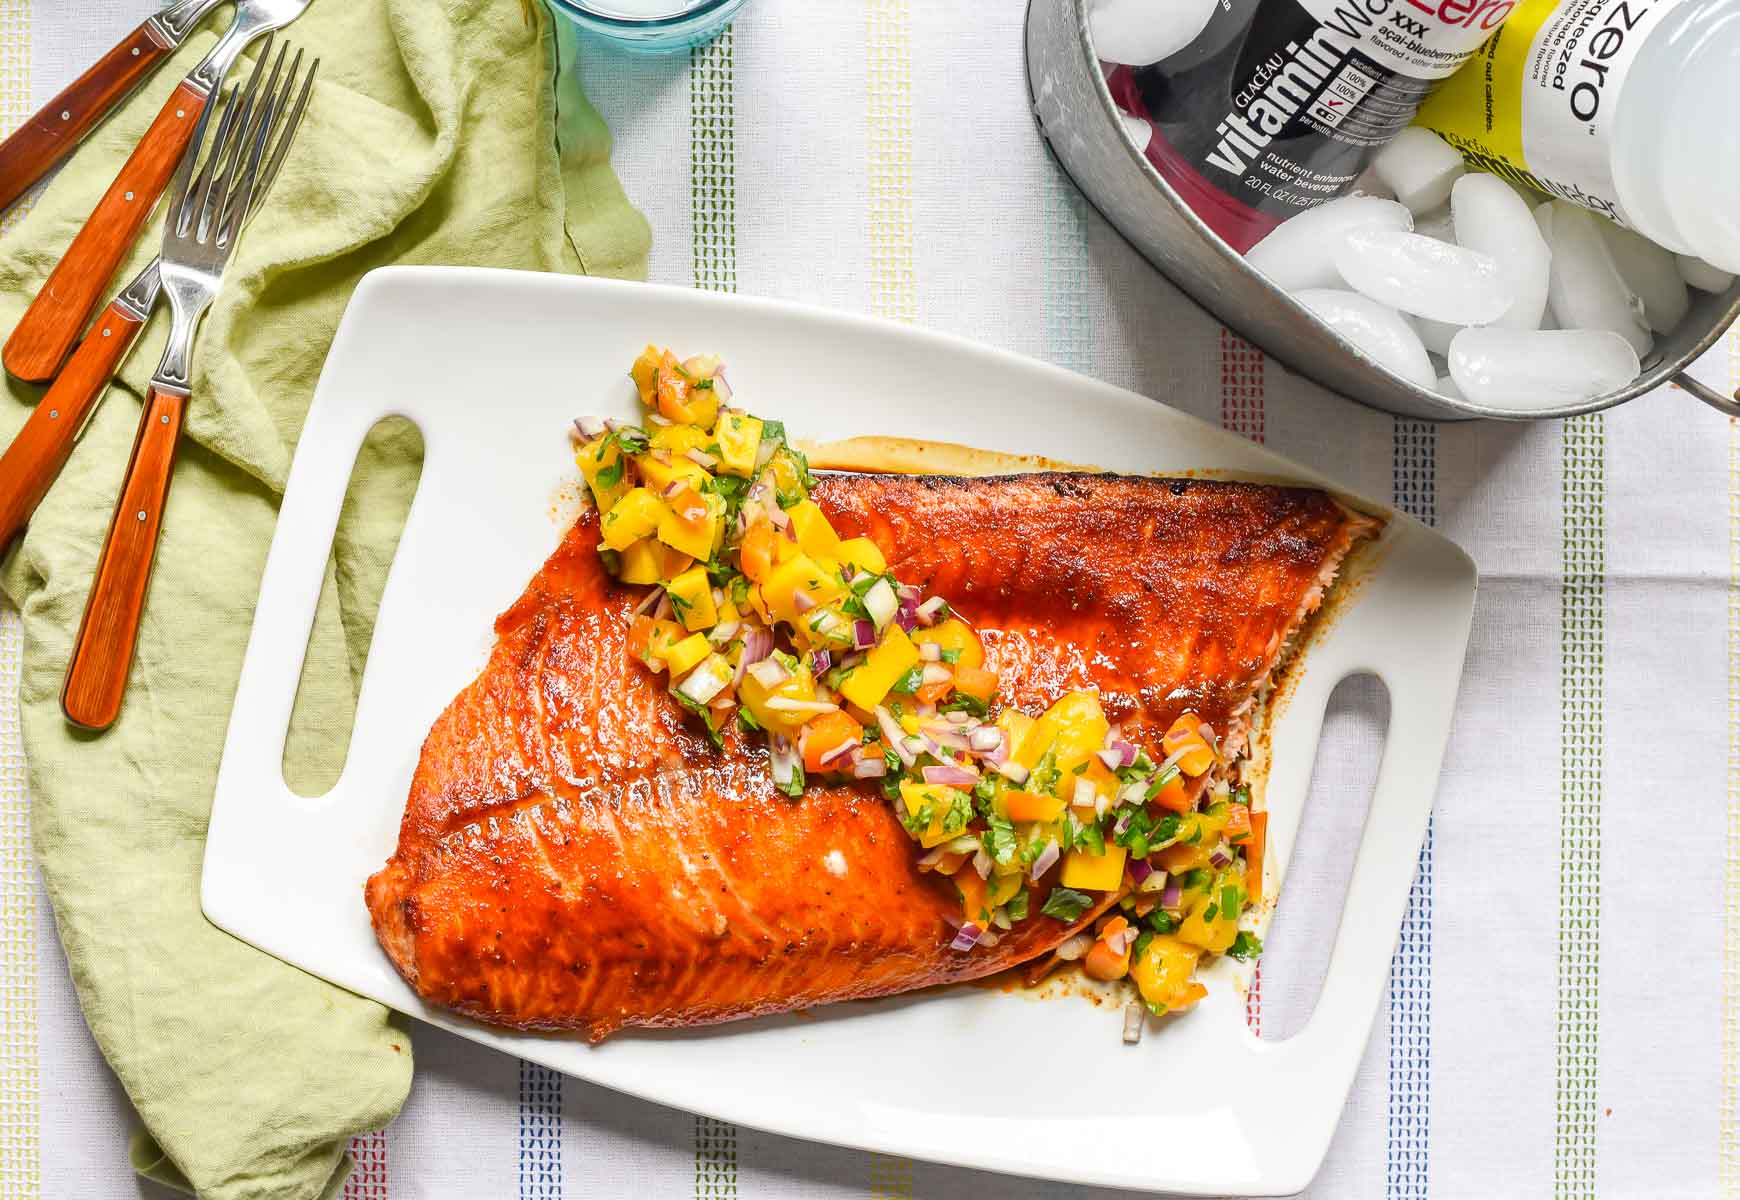 Grilled salmon with mango salsa neighborfood grilled salmon with mango salsa uses a foil packet to keep the salmon moist and tender ccuart Gallery